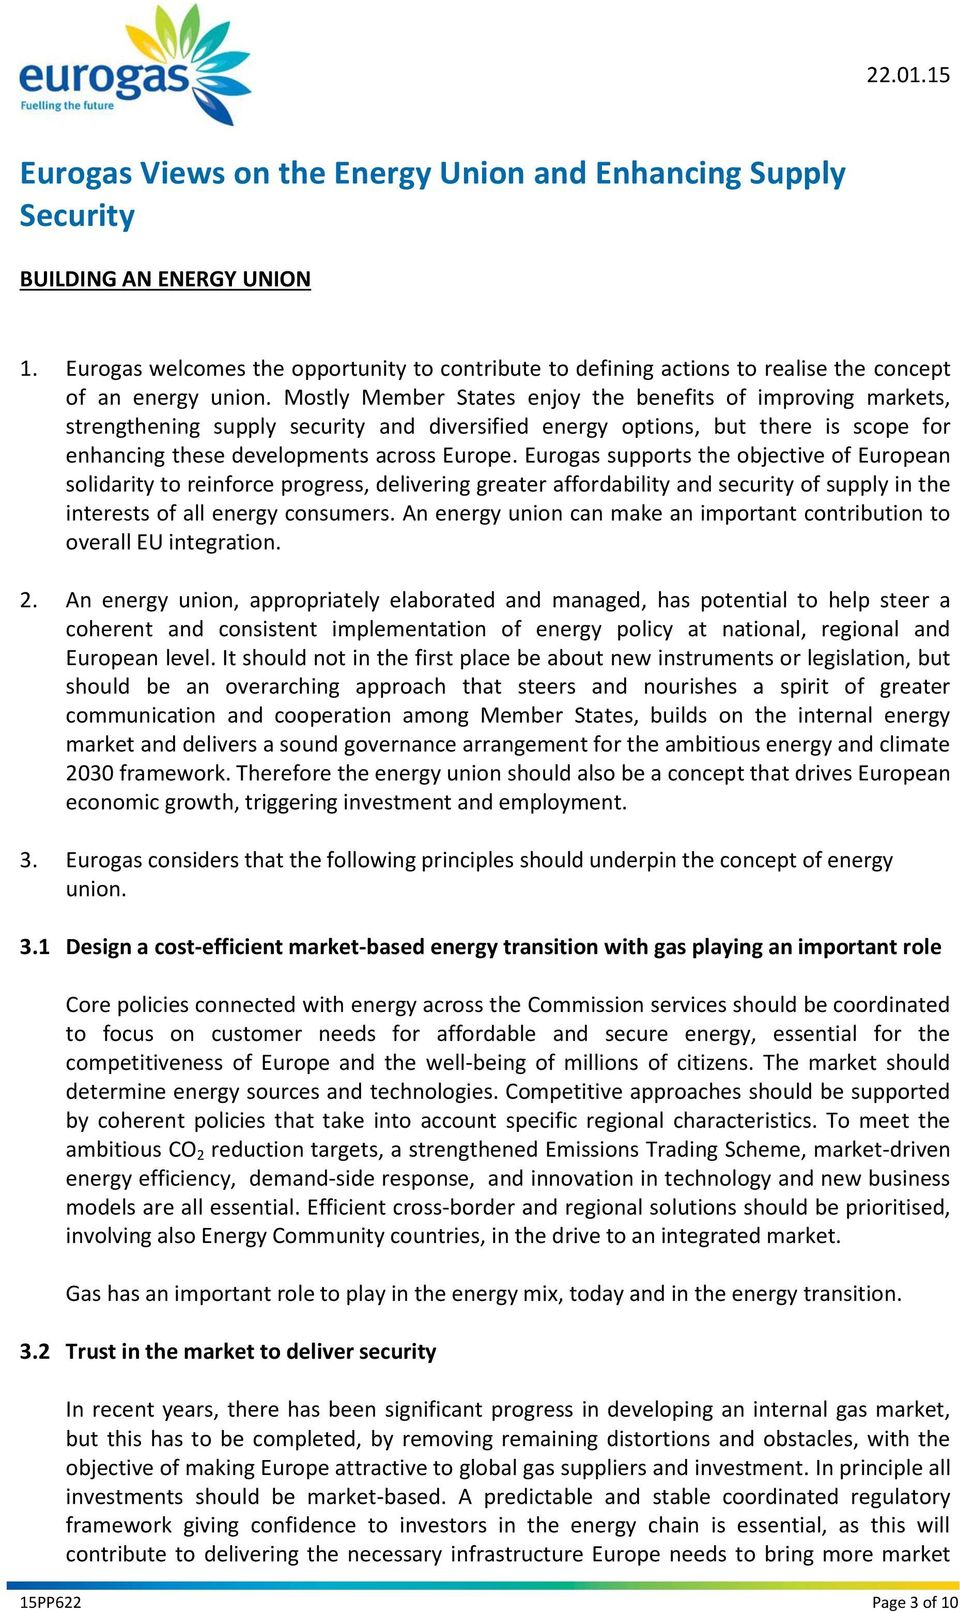 Mostly Member States enjoy the benefits of improving markets, strengthening supply security and diversified energy options, but there is scope for enhancing these developments across Europe.